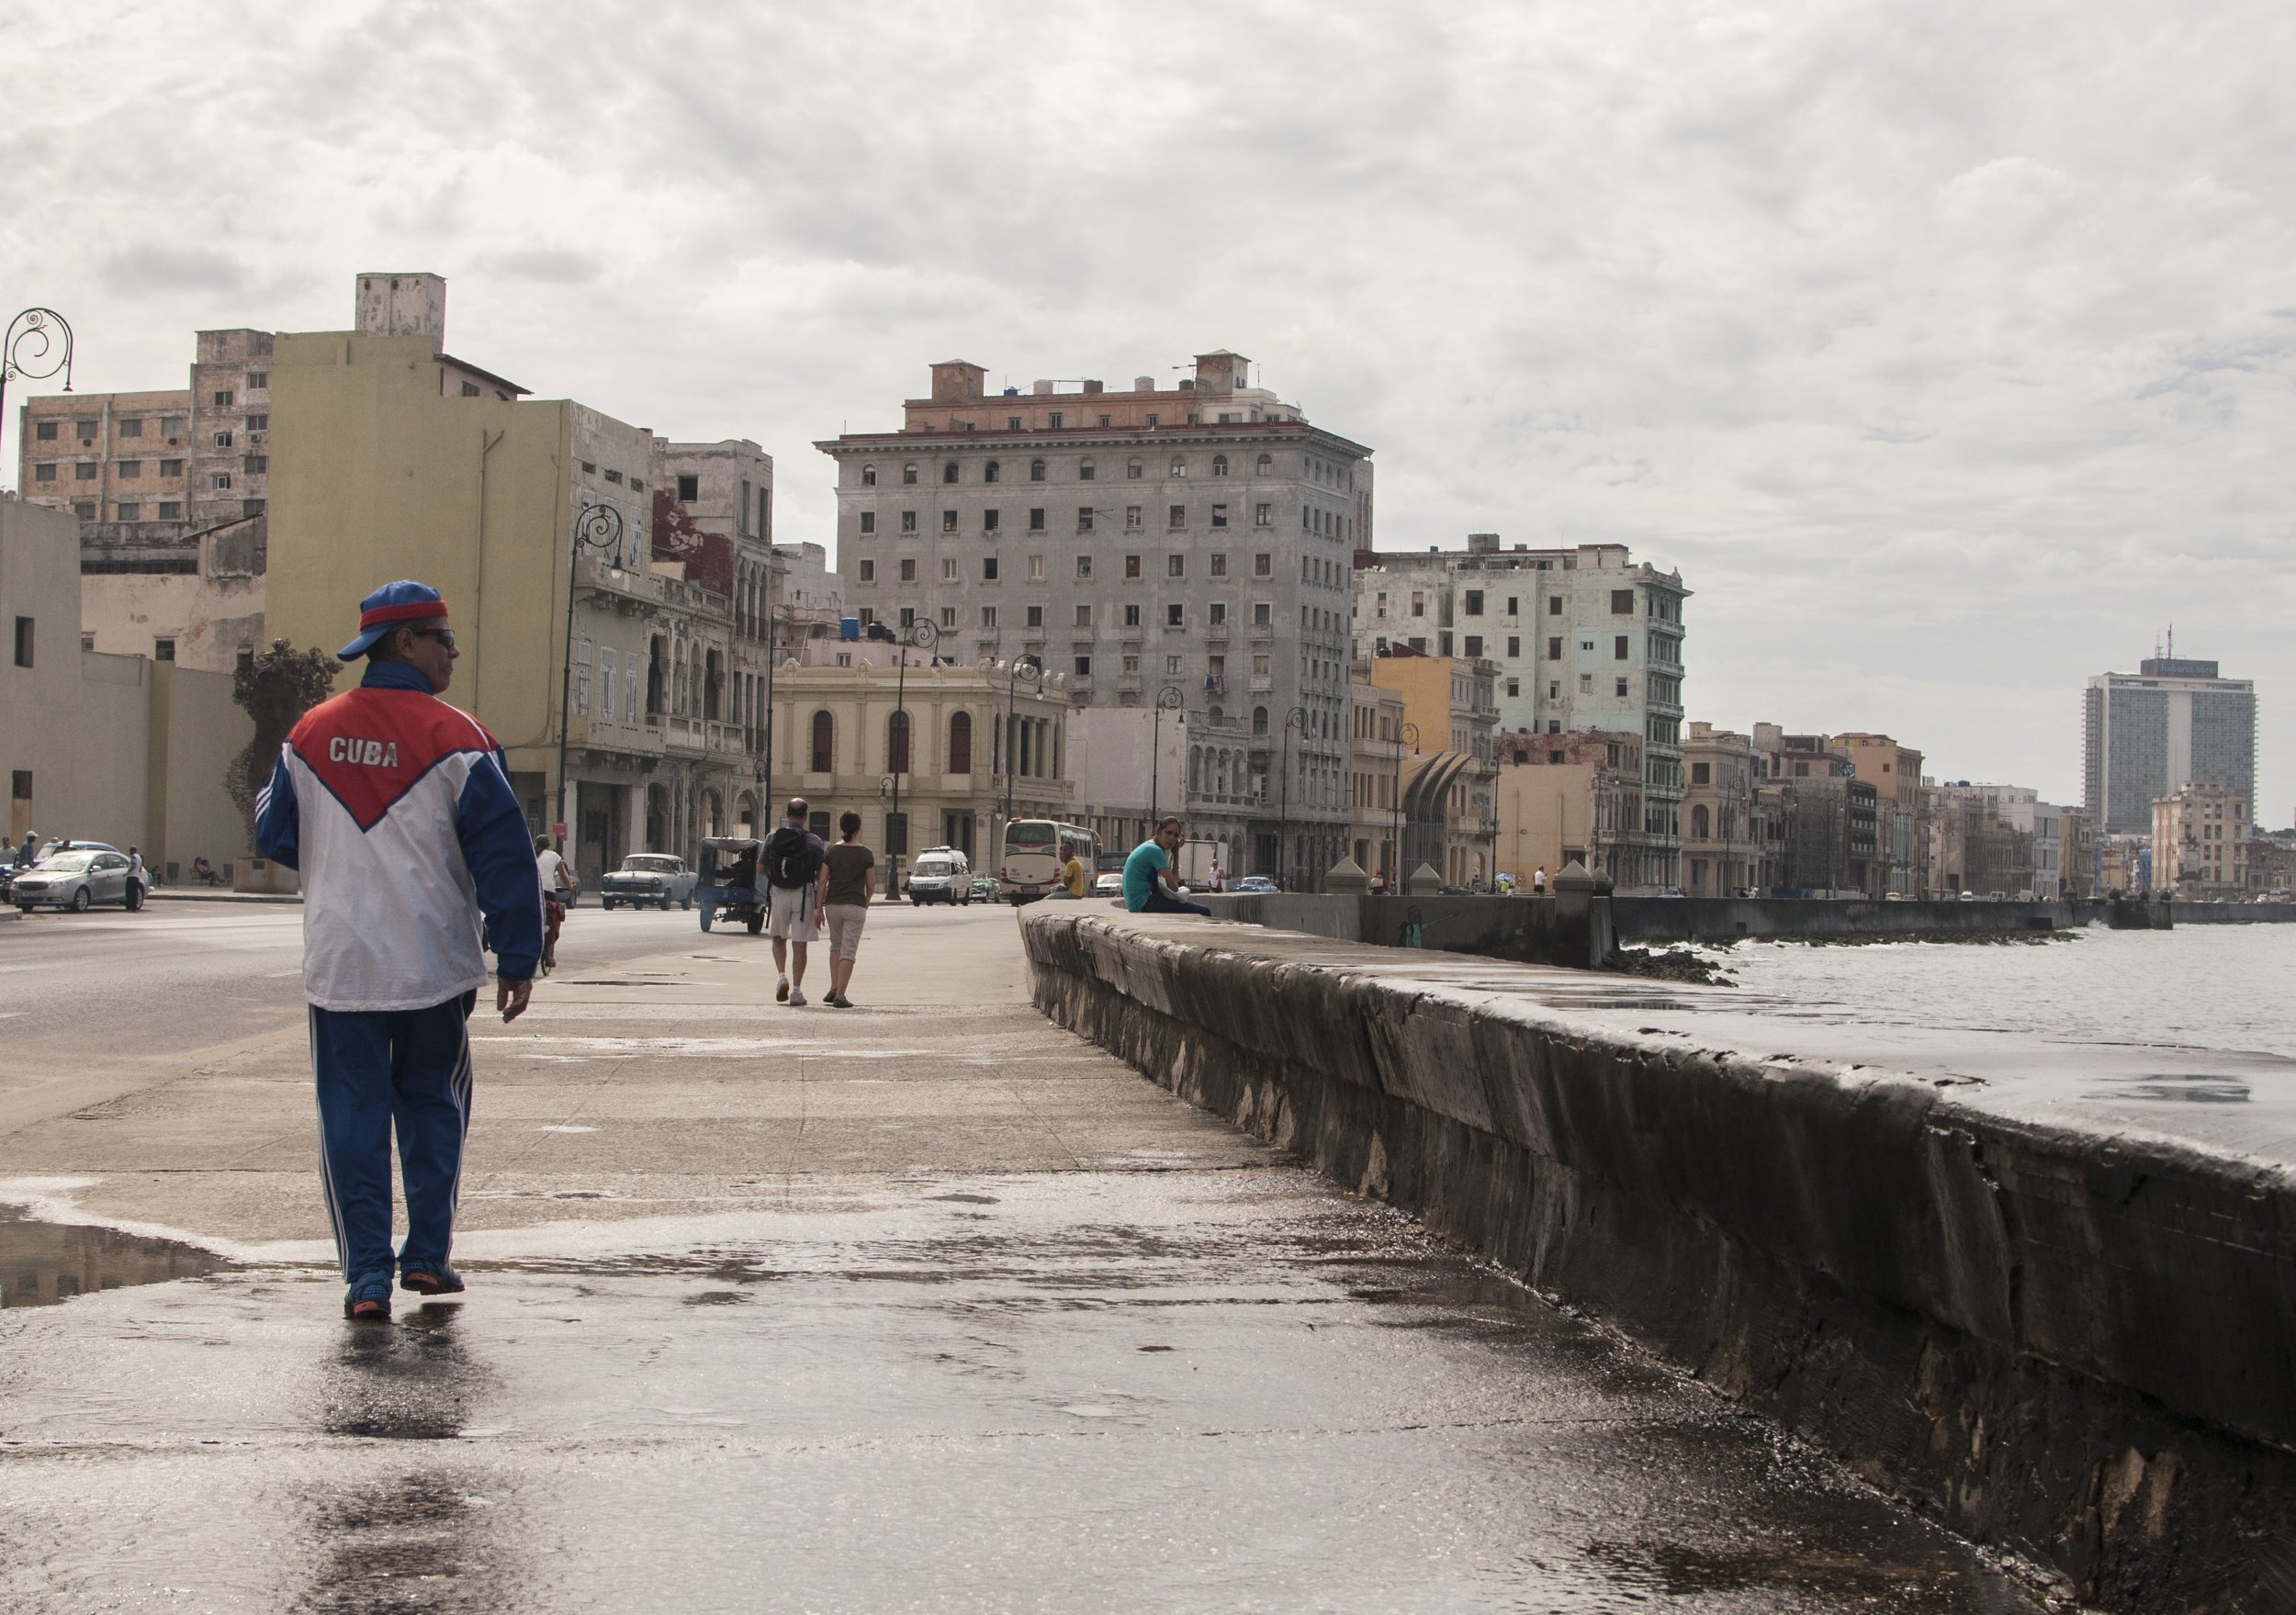 A Cuban walking along The Malecón in Havana.